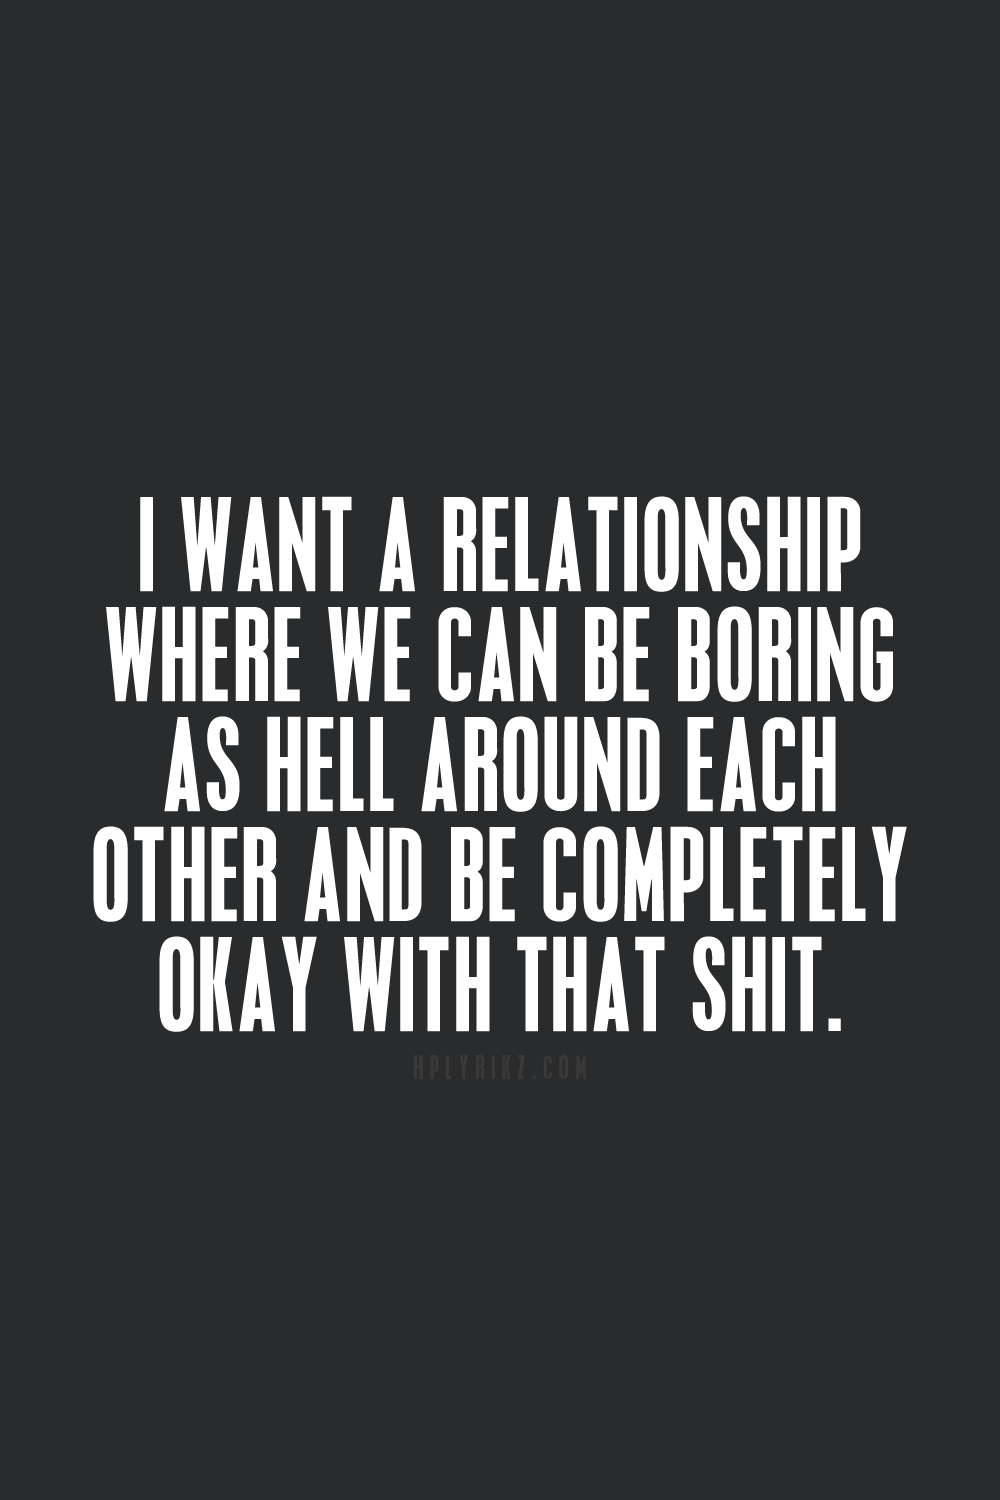 relationship getting boring quotes pics